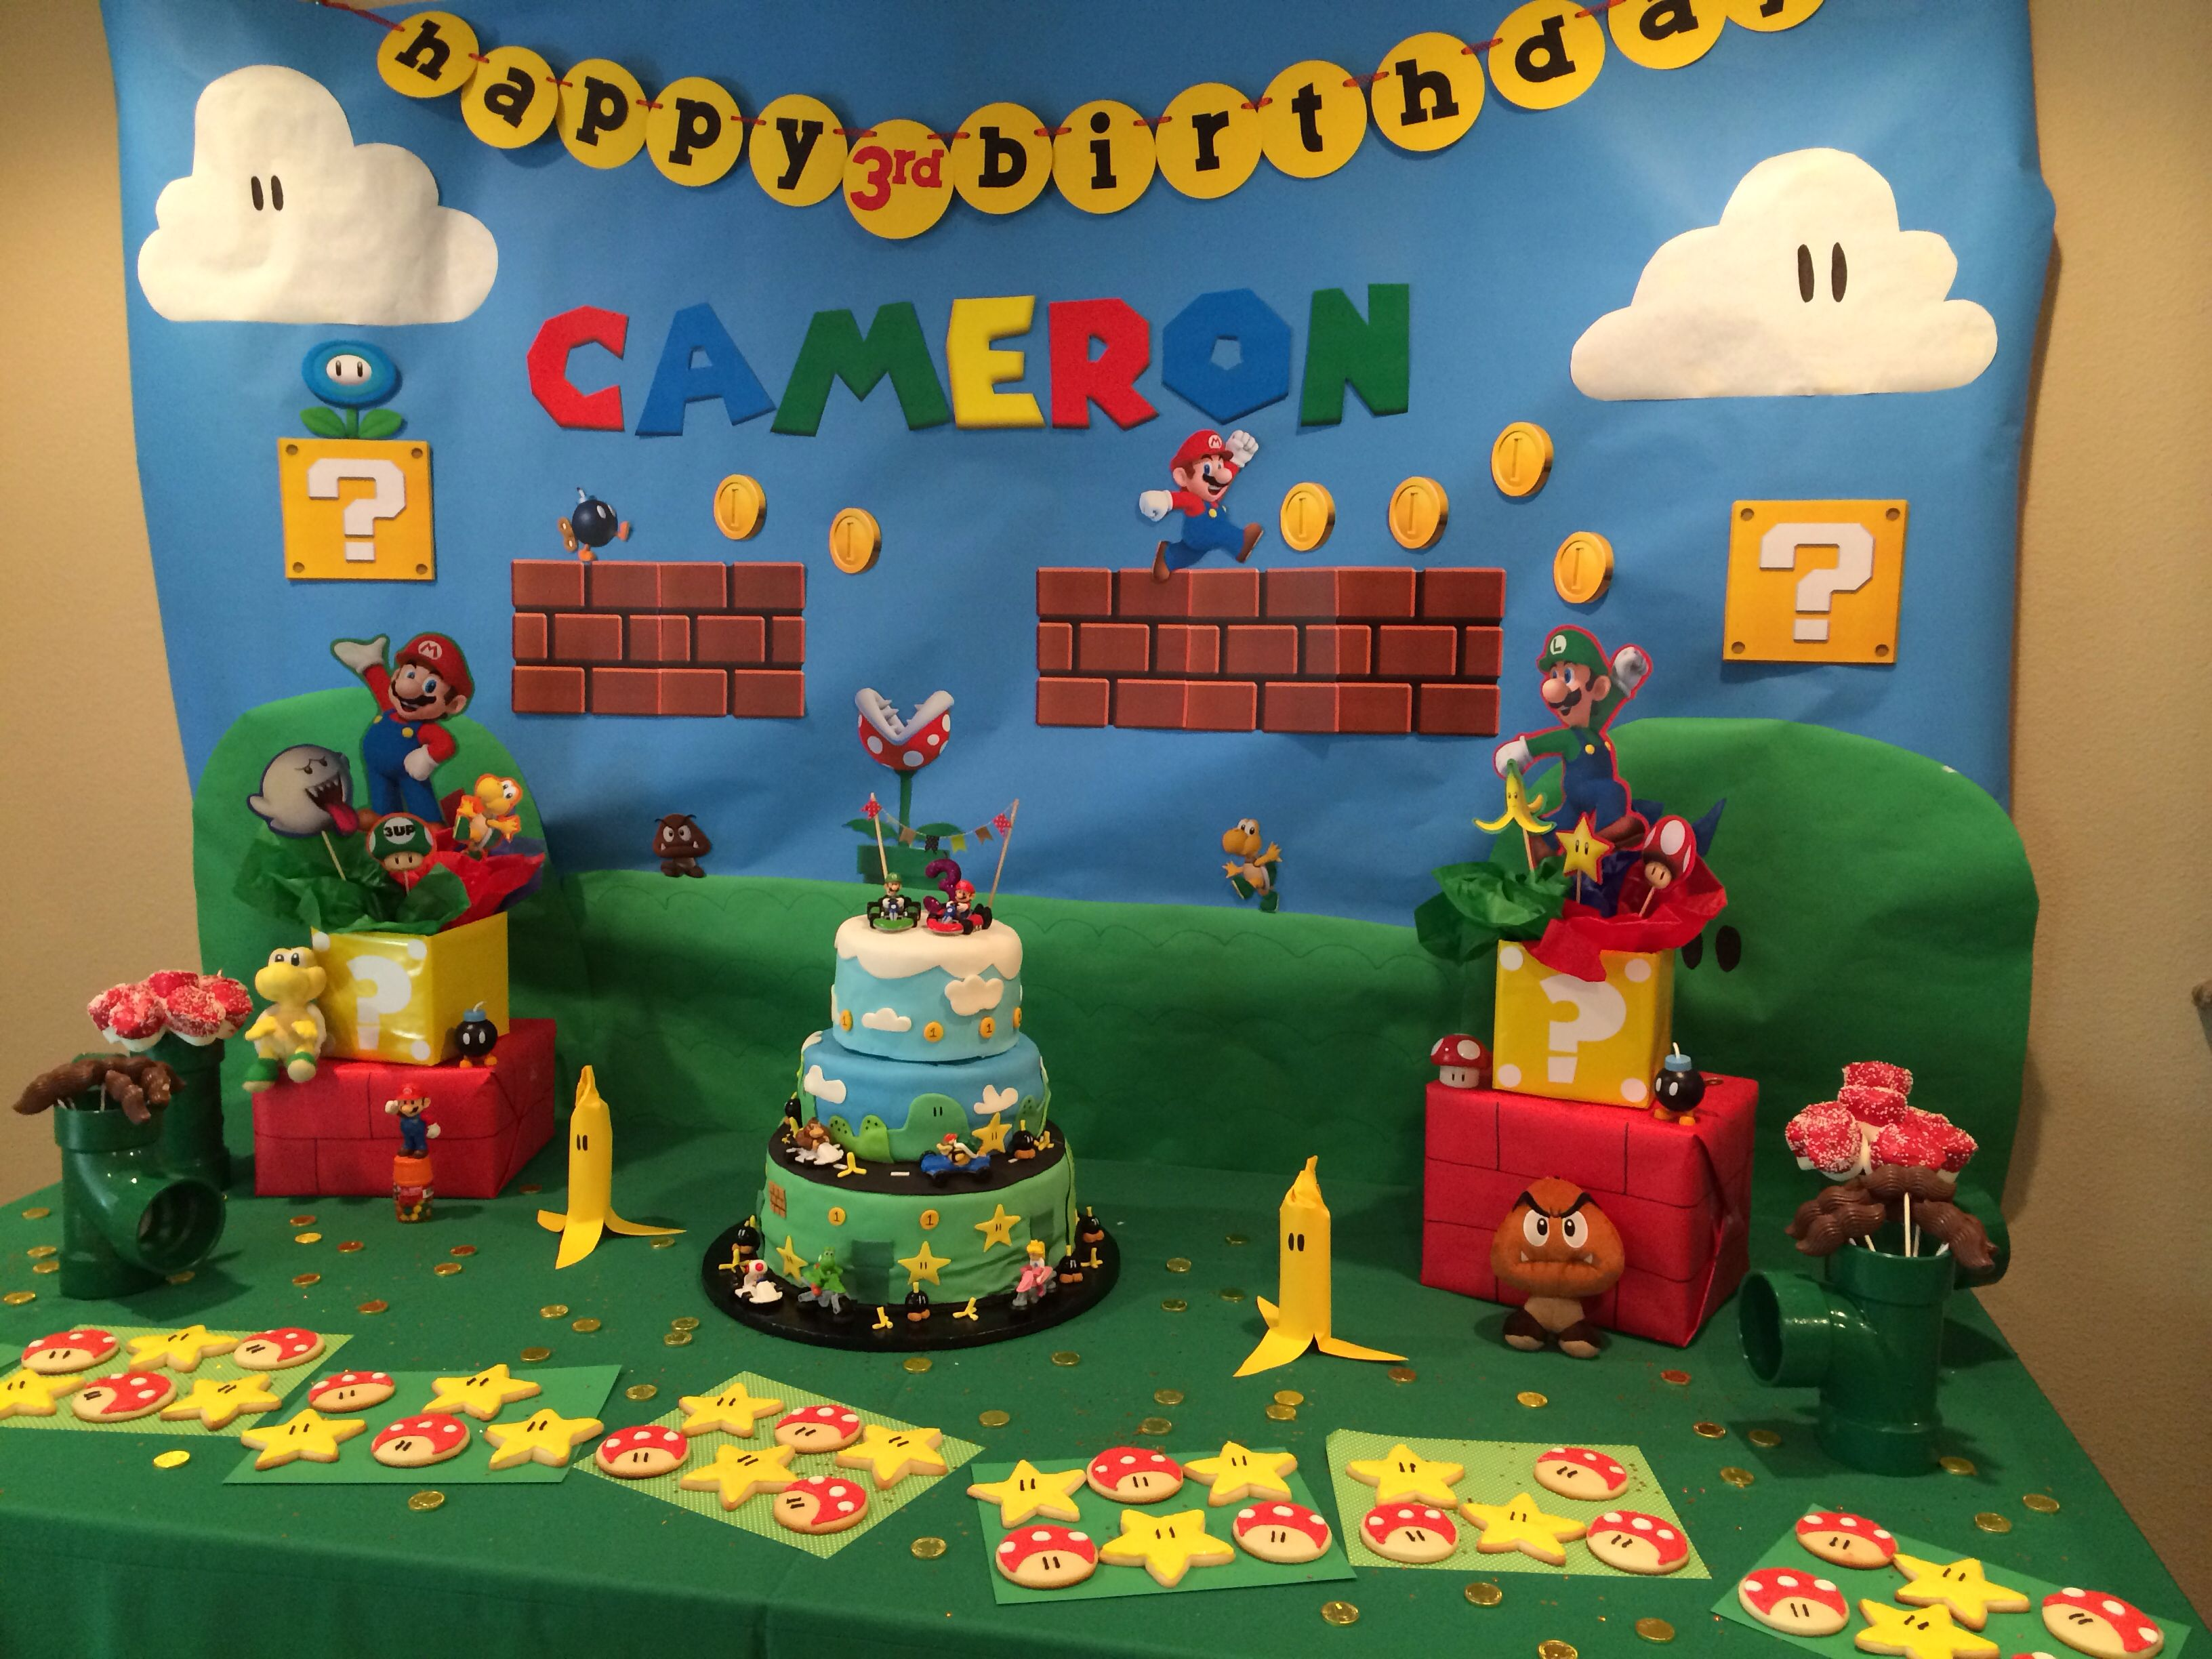 Mario birthday party treat table decor and cake Pinspiration